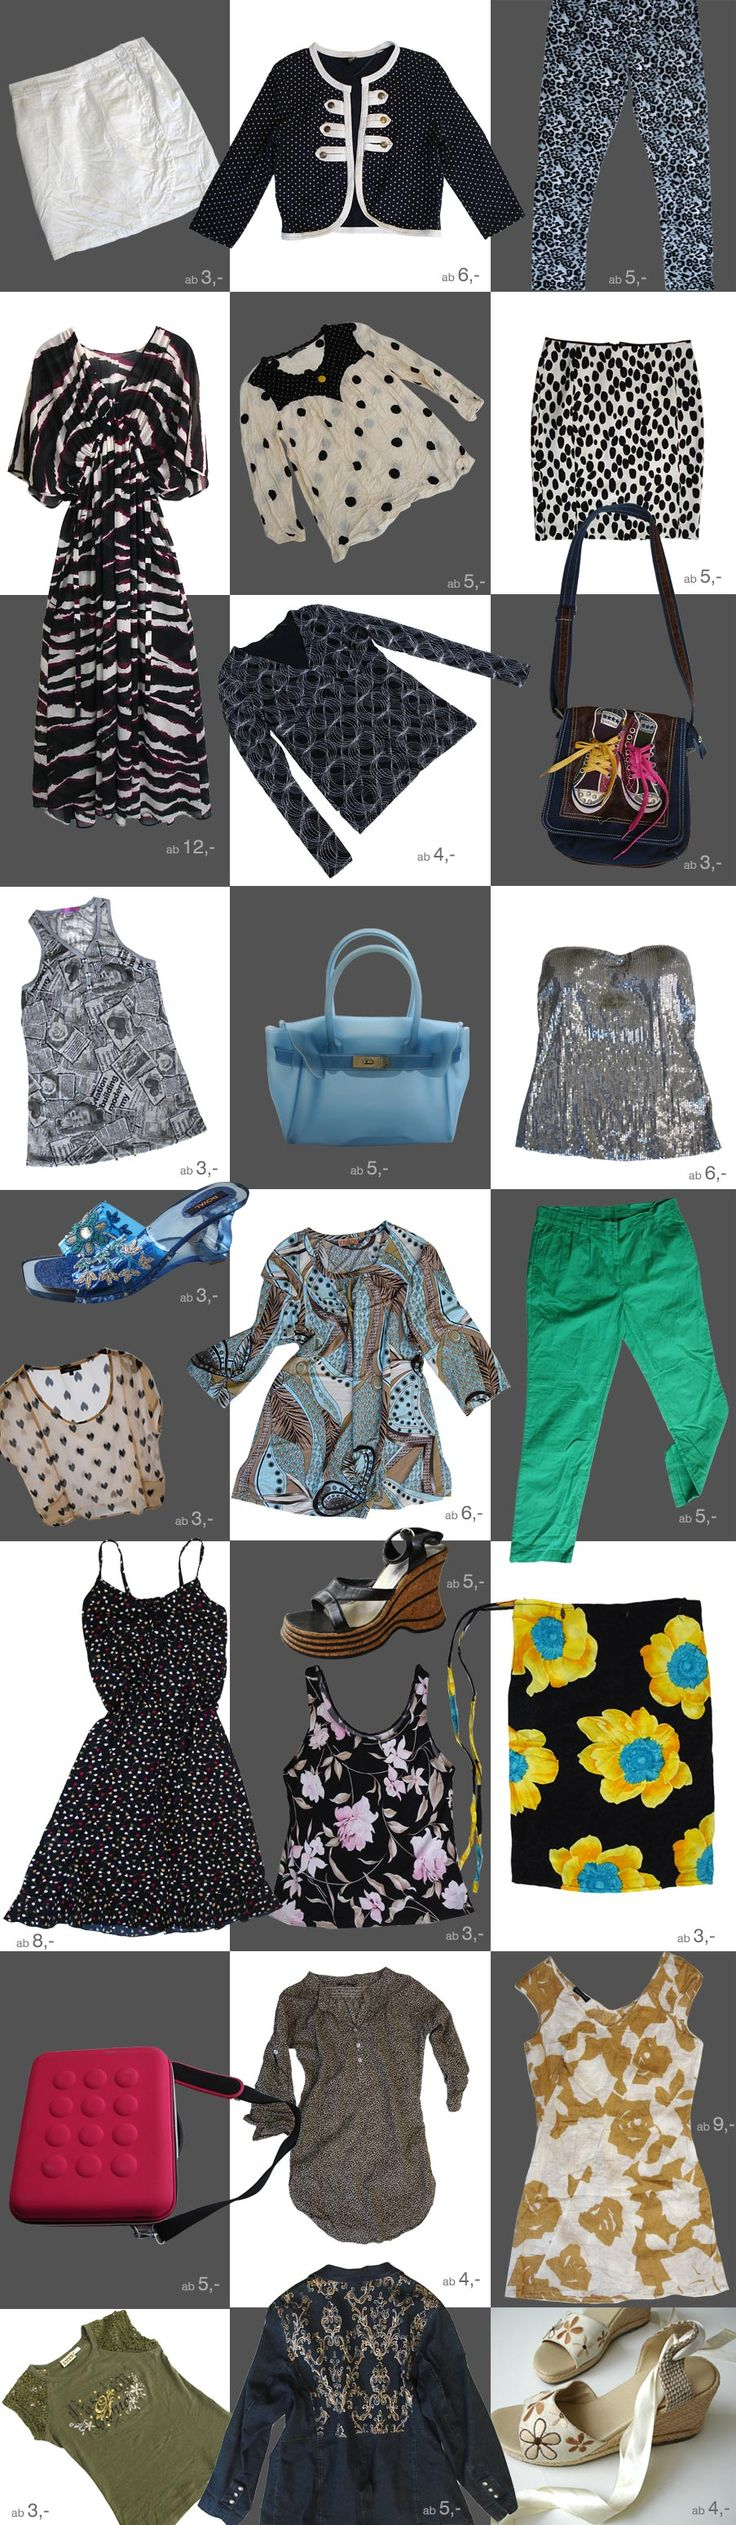 second-hand store / men's, women's and children's clothes / homeware / Something for me